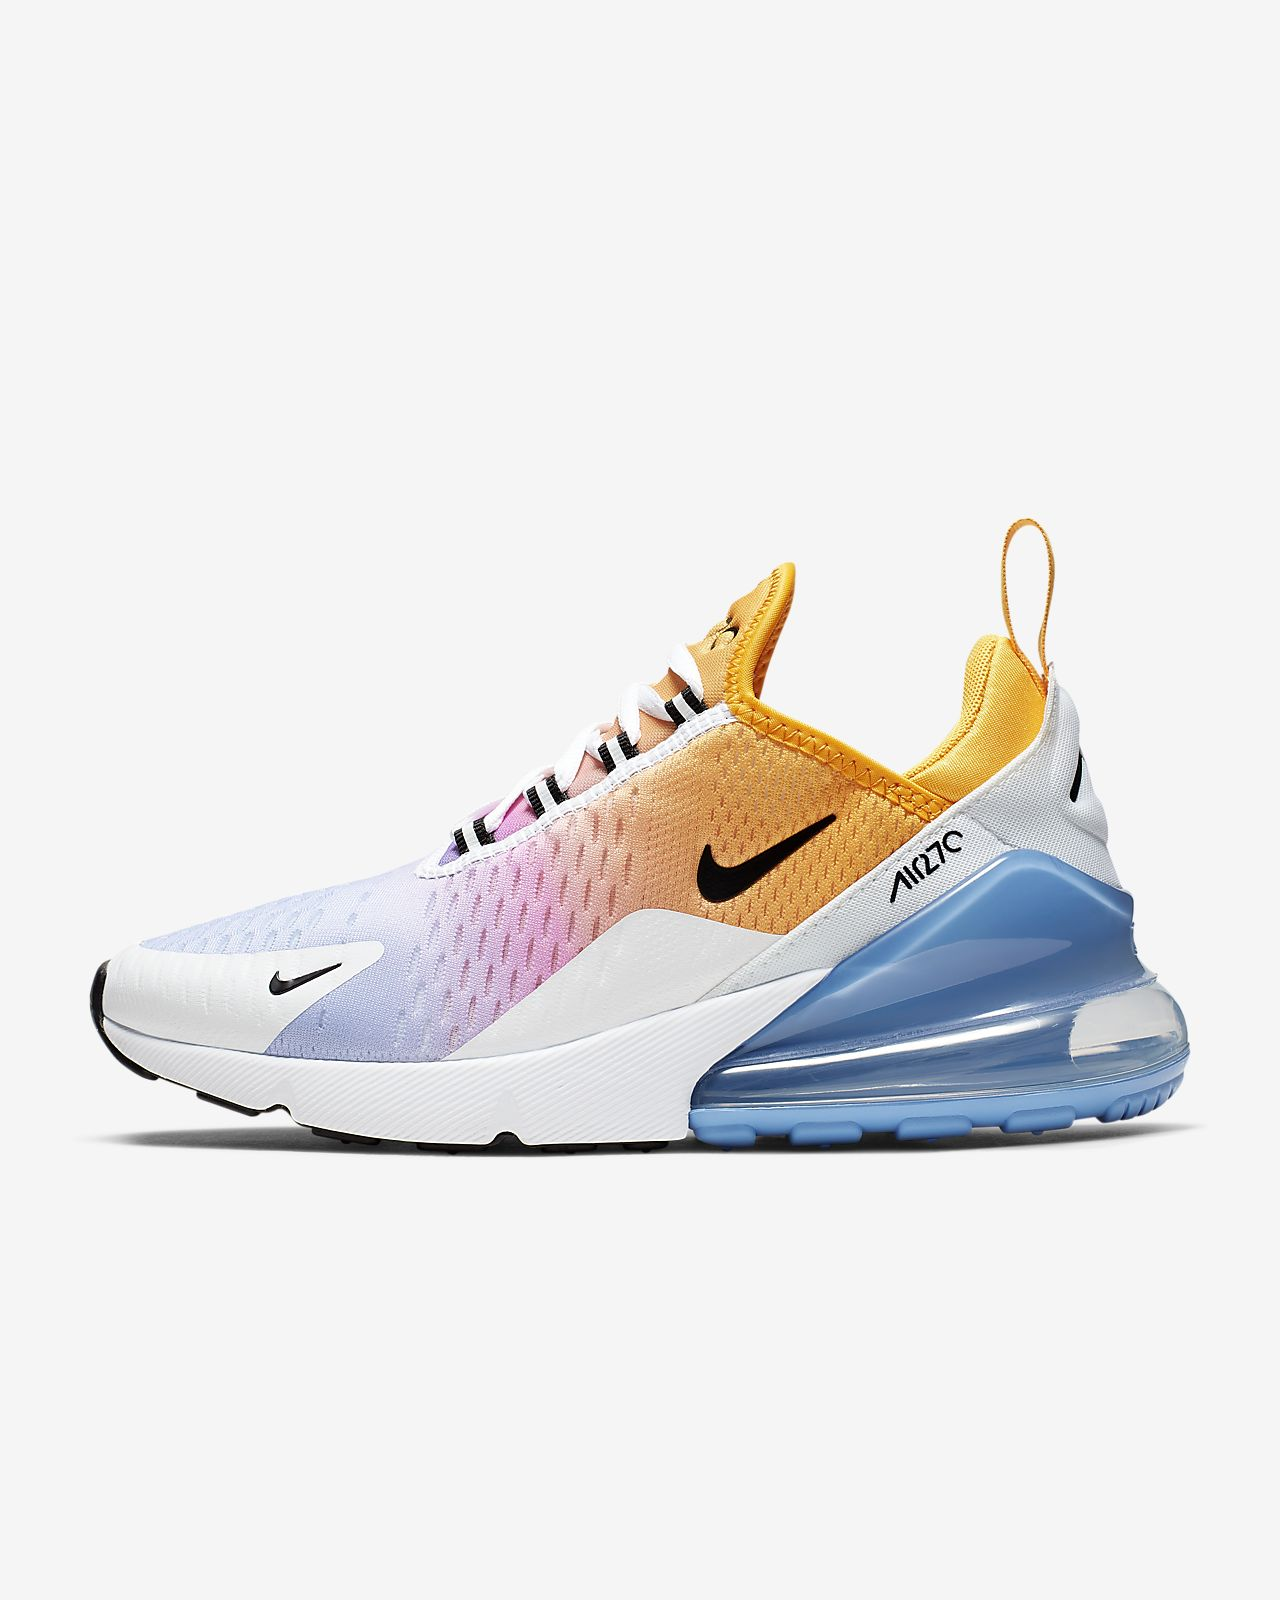 nike air max 270 dames blauw